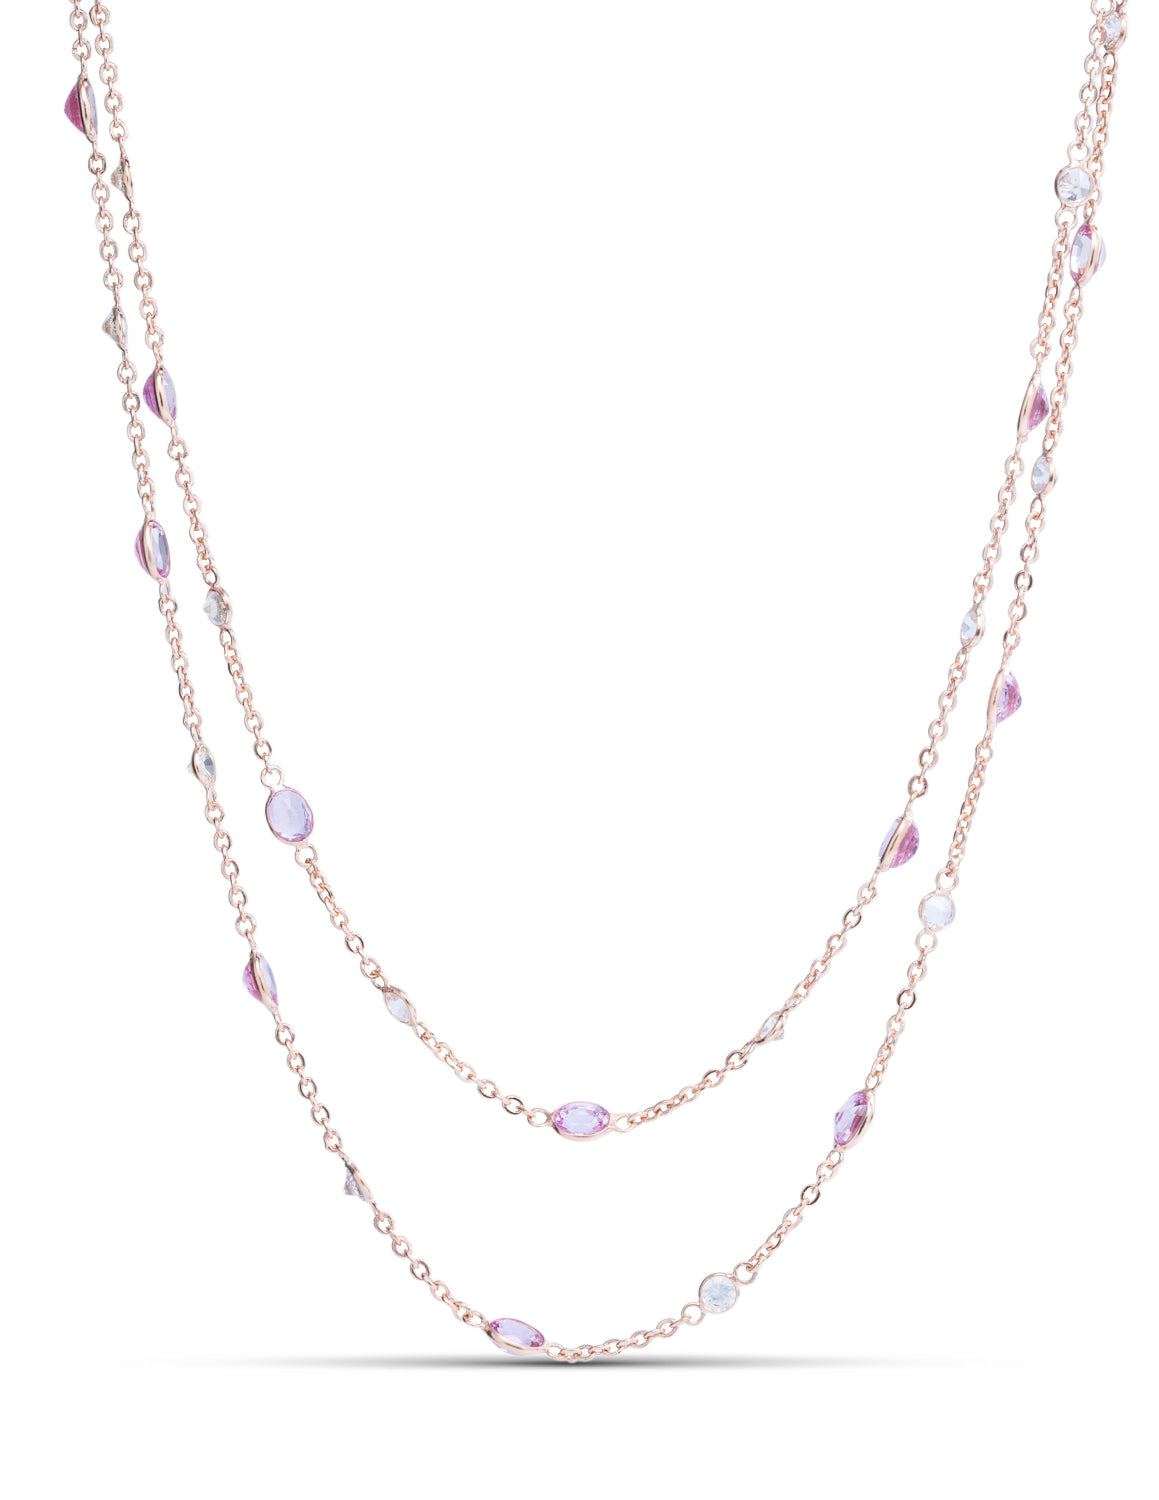 White and Pink Sapphire Rose Gold Necklace - Charles Koll Jewellers